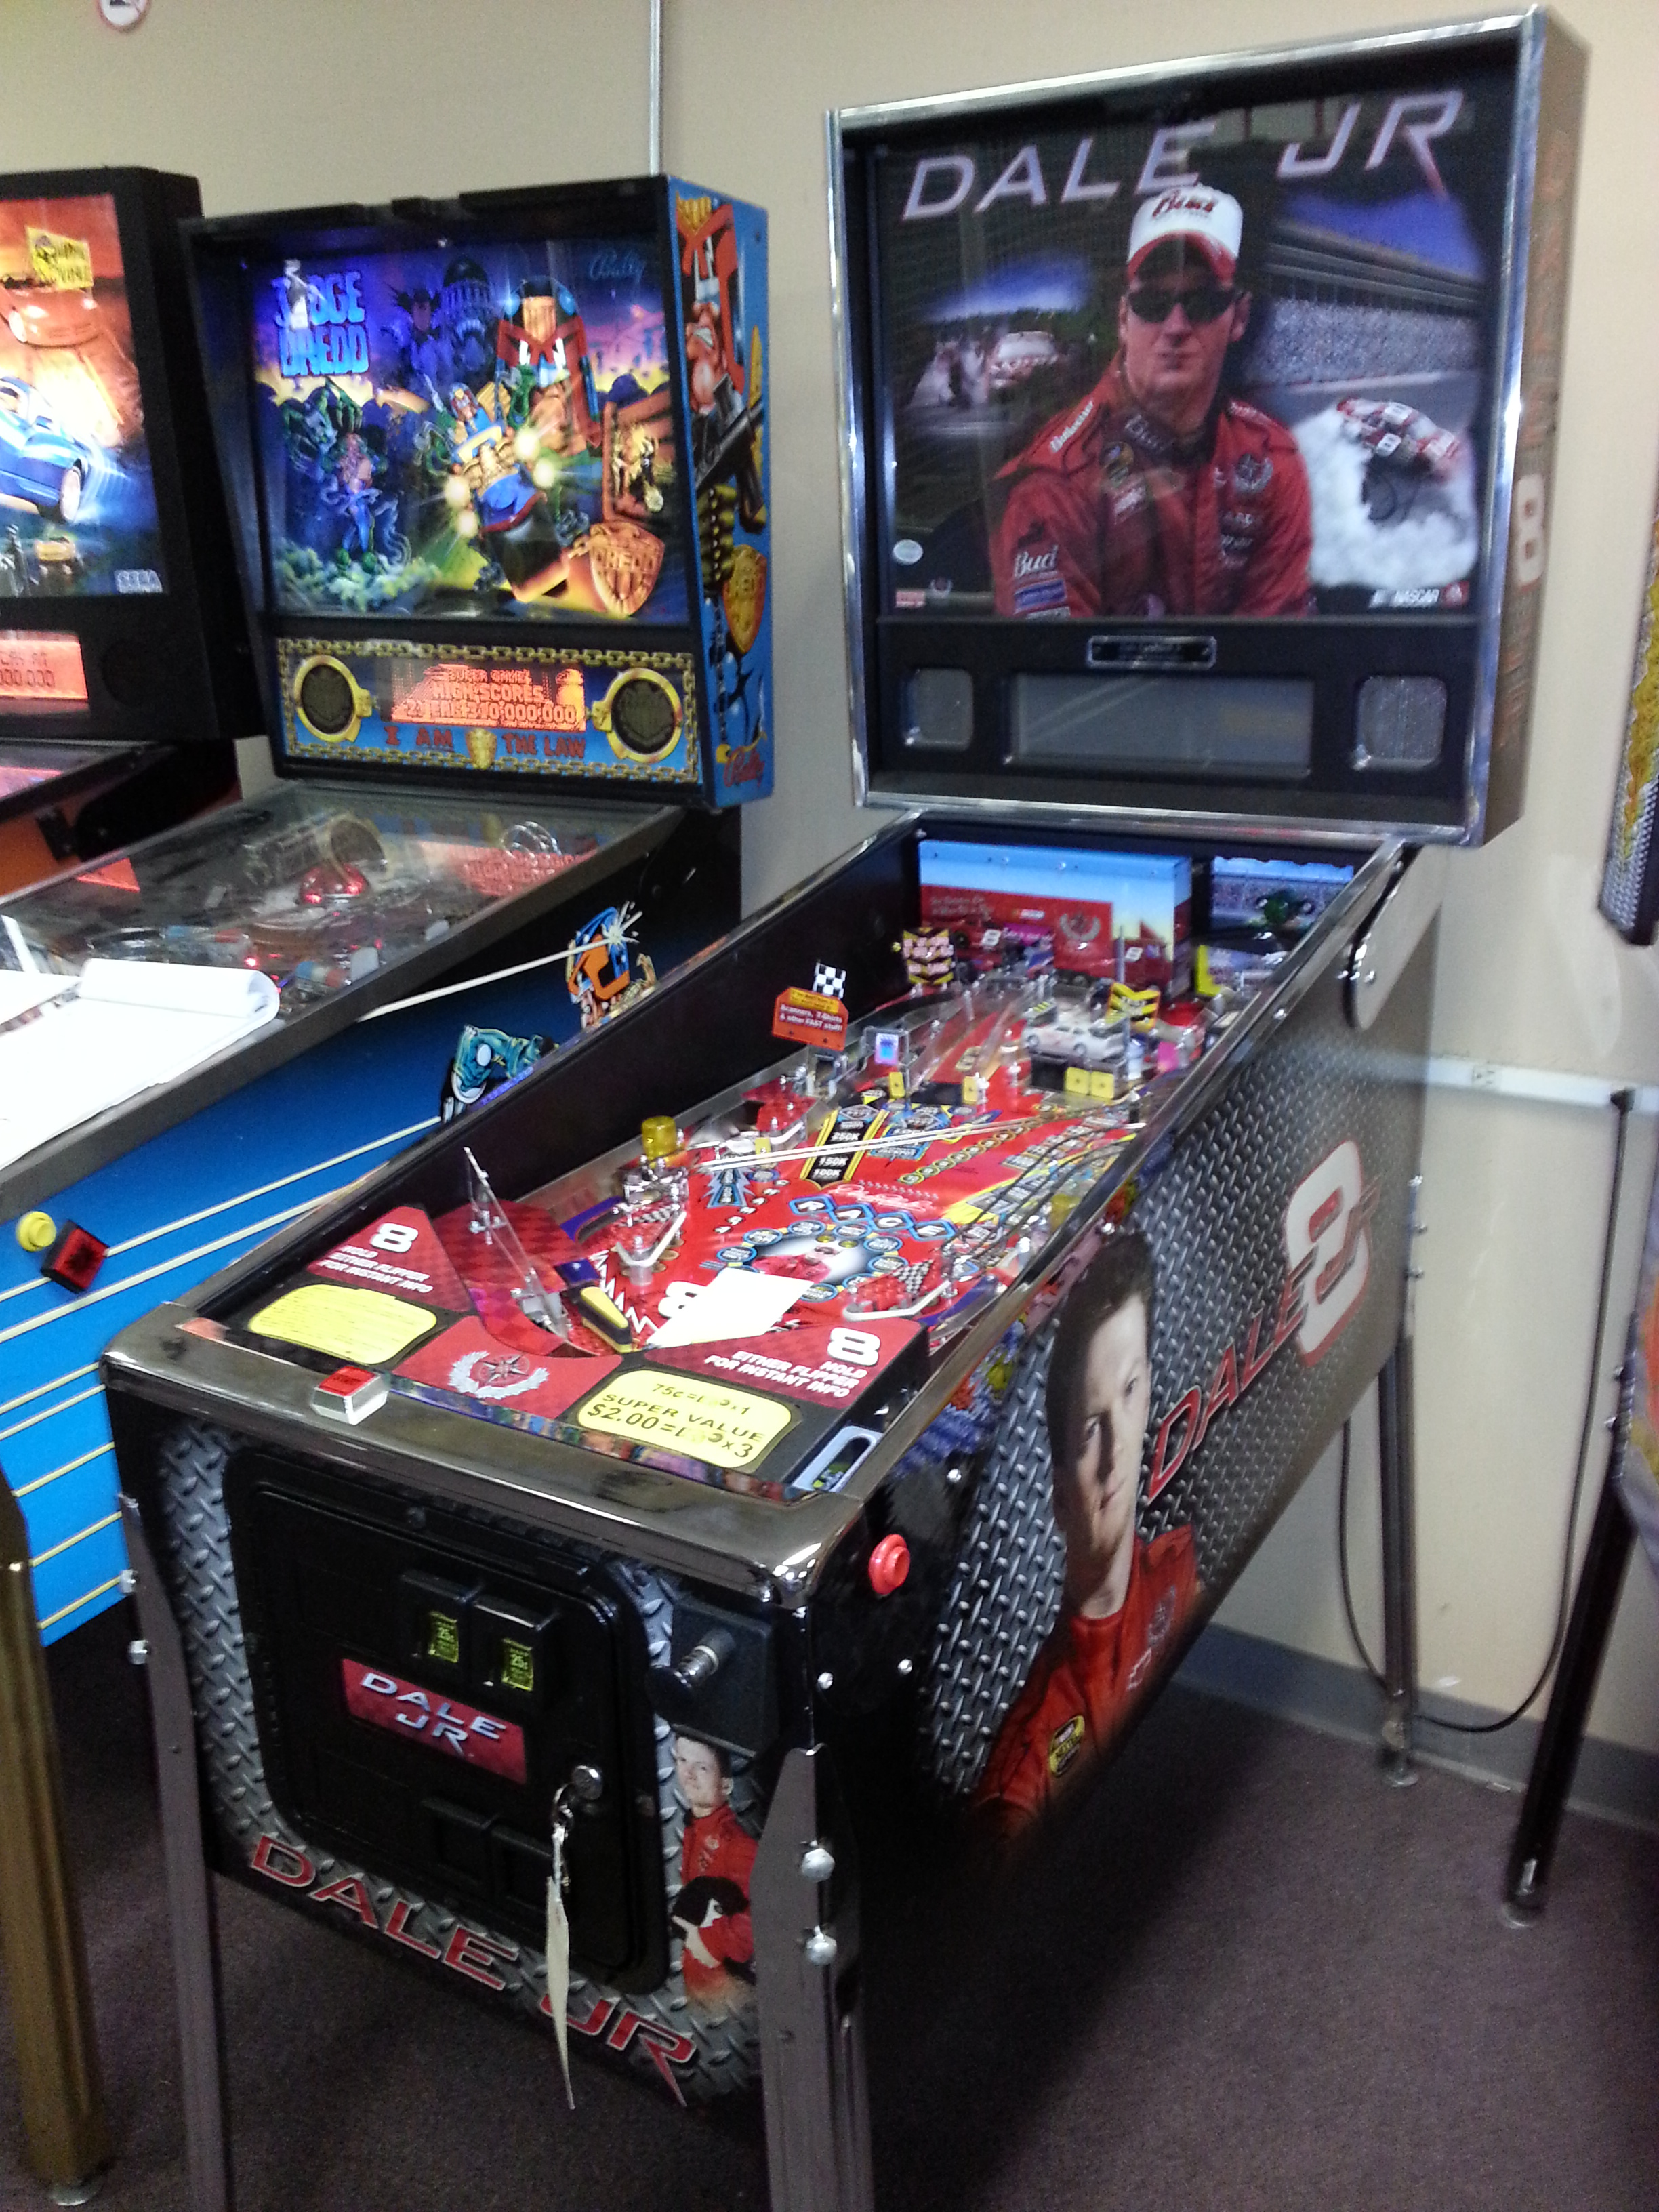 Used Car Parts For Sale >> NASCAR DALE EARNHARDT JR. #8 Pinball Machine Game for sale by Stern - LIMITED EDITION - FREE ...